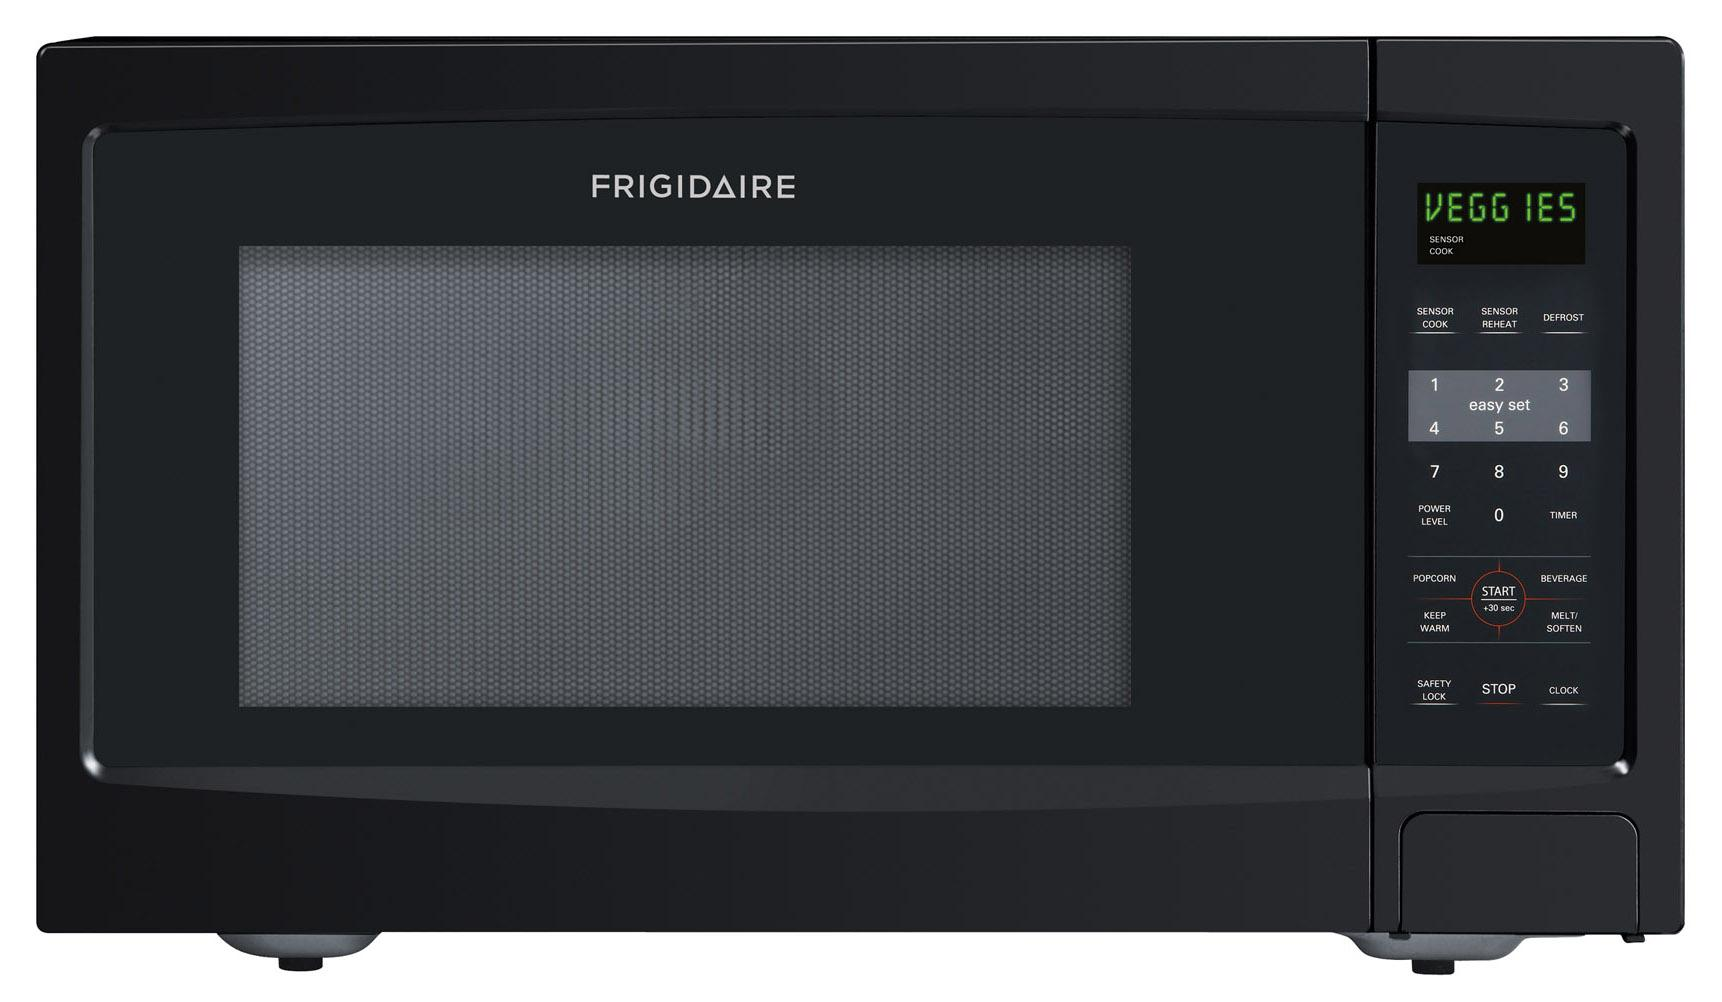 Frigidaire Microwaves 1.6 Cu. Ft. Countertop Microwave - Item Number: FFCE1638LB